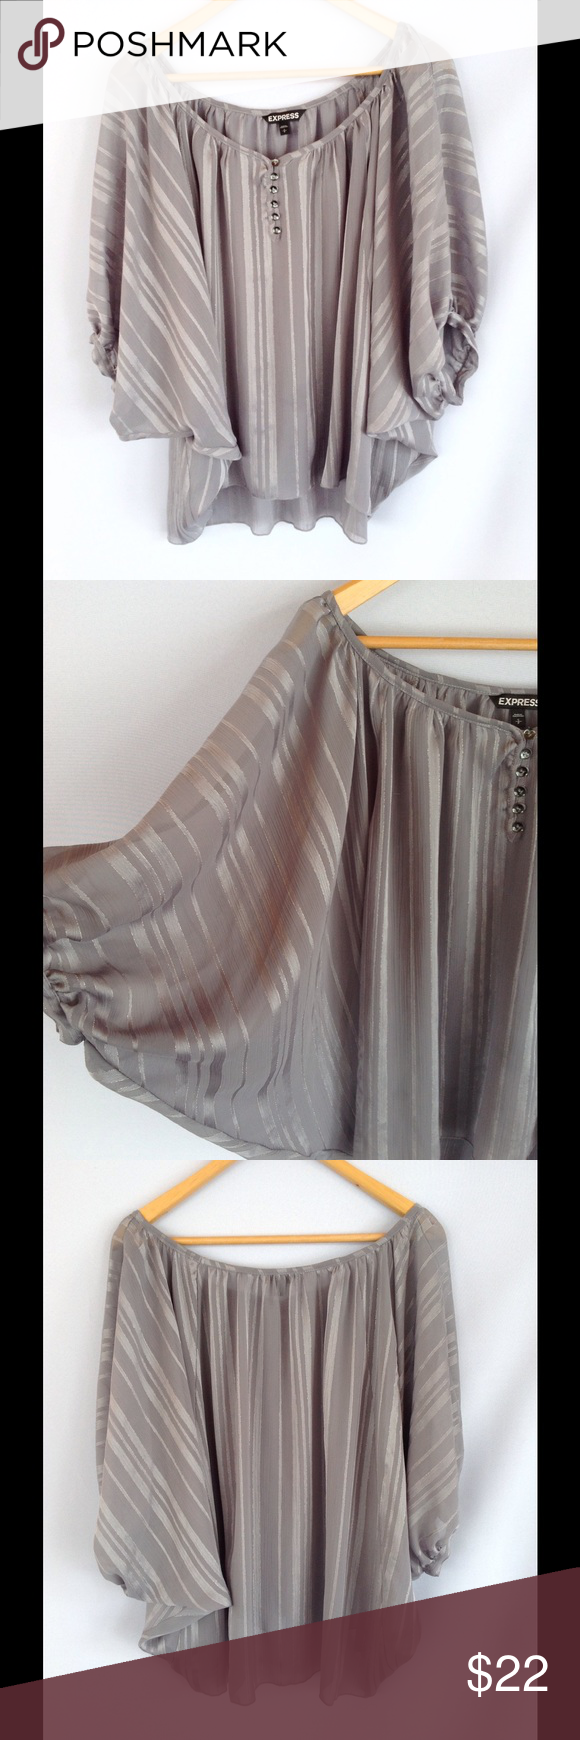 Express Silver Flowy Top Gorgeous silver flowy top. Excellent condition. Express Tops